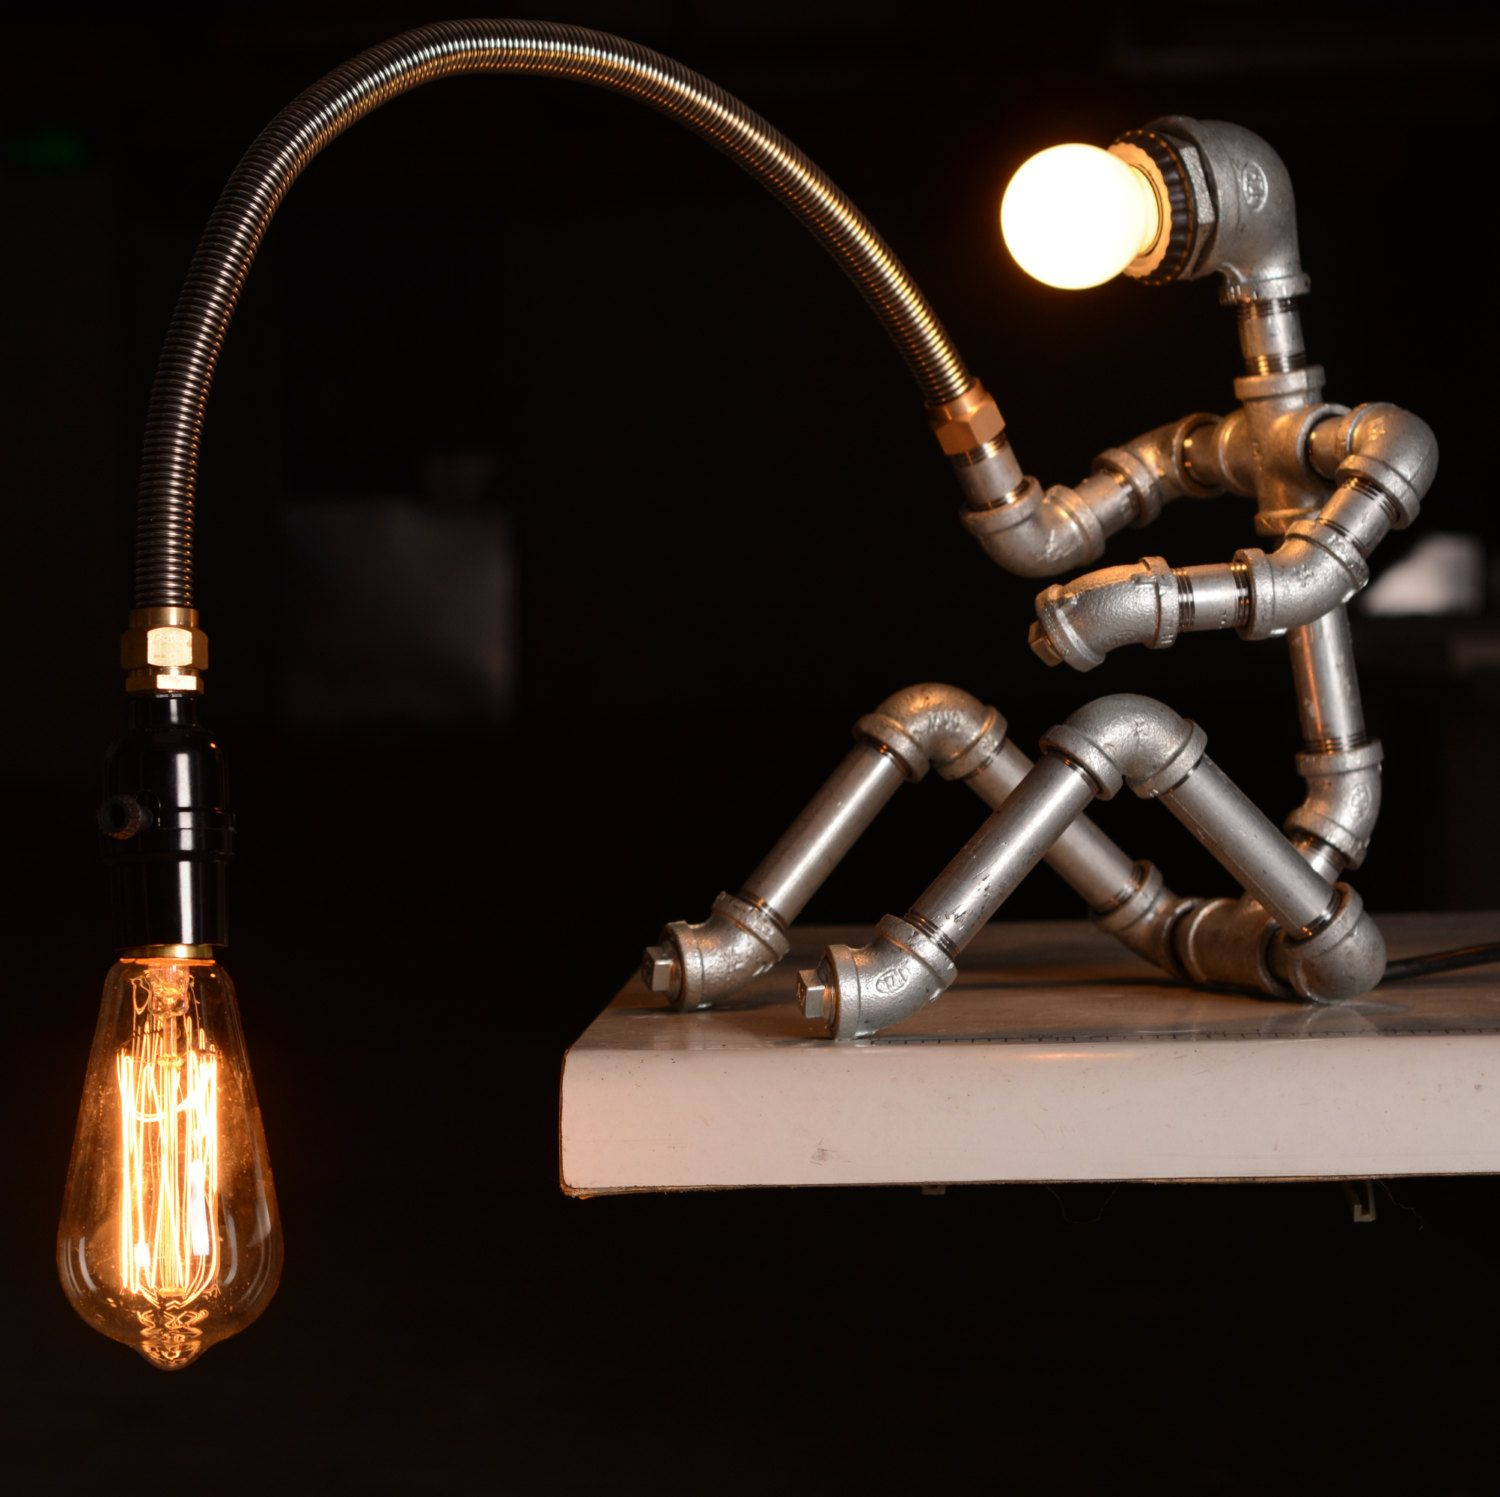 Industrial Looking Light Bulbs Ebe Designer Industrial Lighting Steampunk Lamp Table